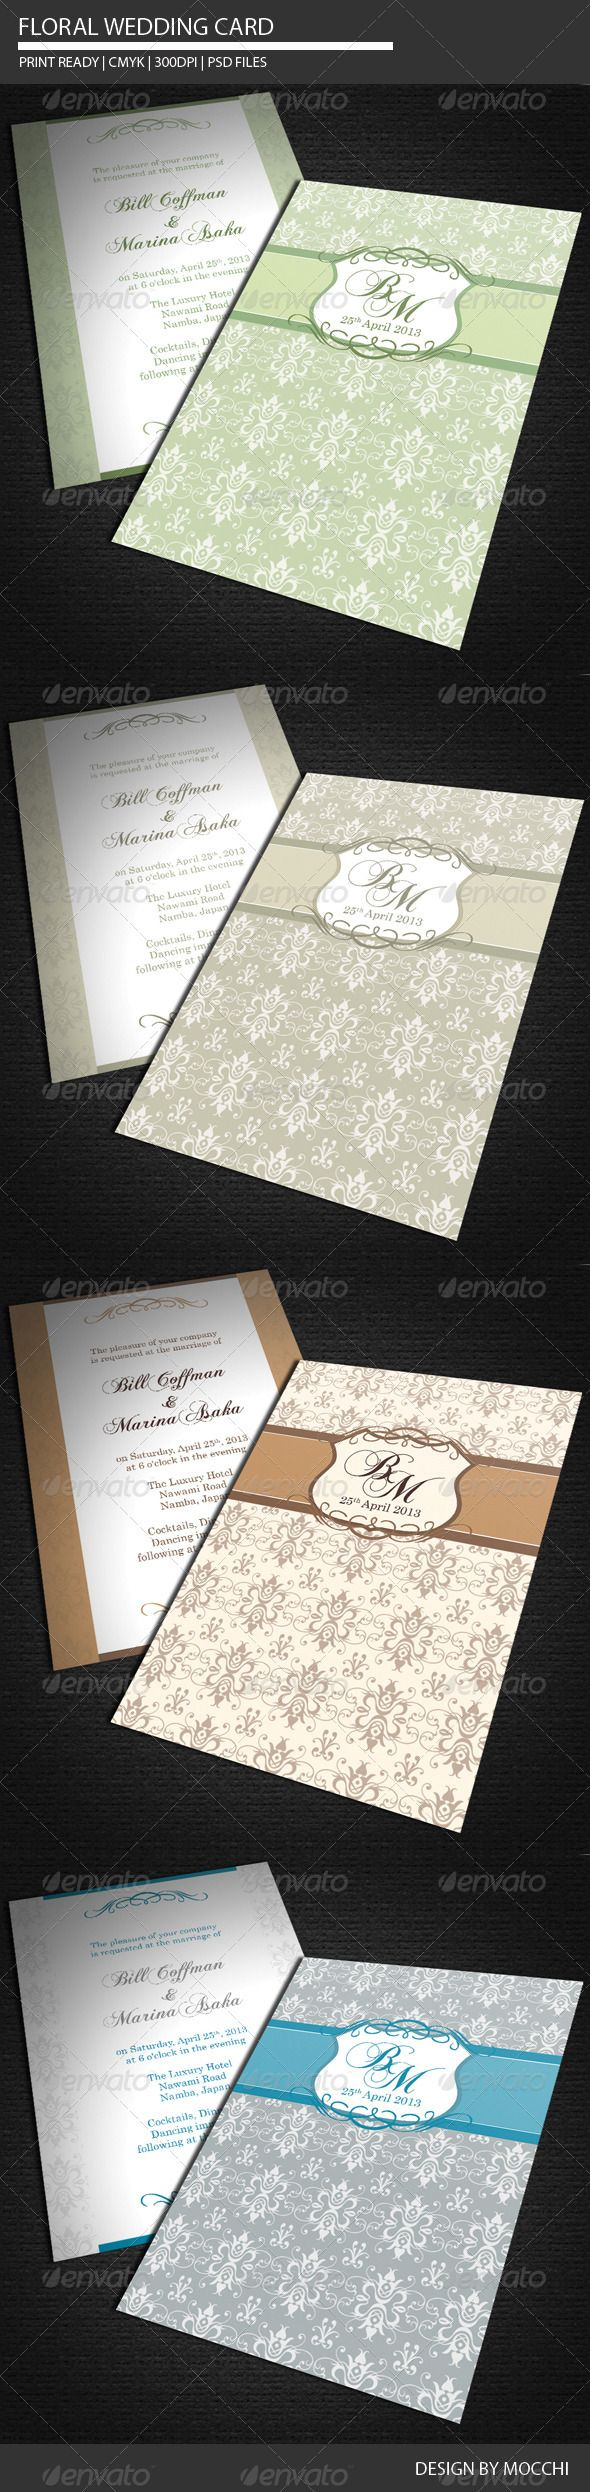 Floral Wedding Card Template PSD | Buy and Download: http://graphicriver.net/item/floral-wedding-card/2222712?WT.ac=category_thumb&WT.z_author=MOCCHI&ref=ksioks